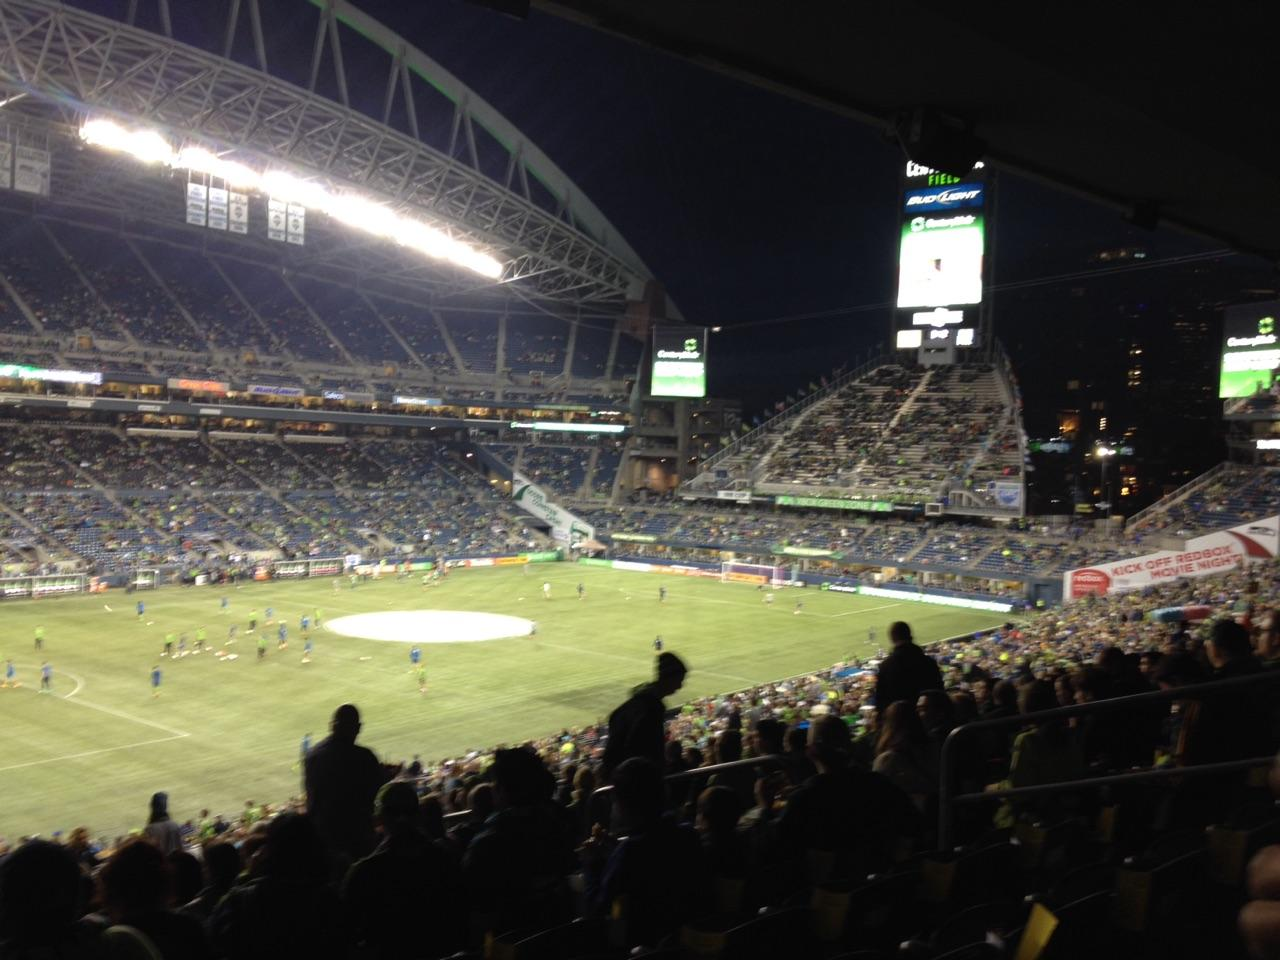 CenturyLink Field Section 215 Row Y Seat 7